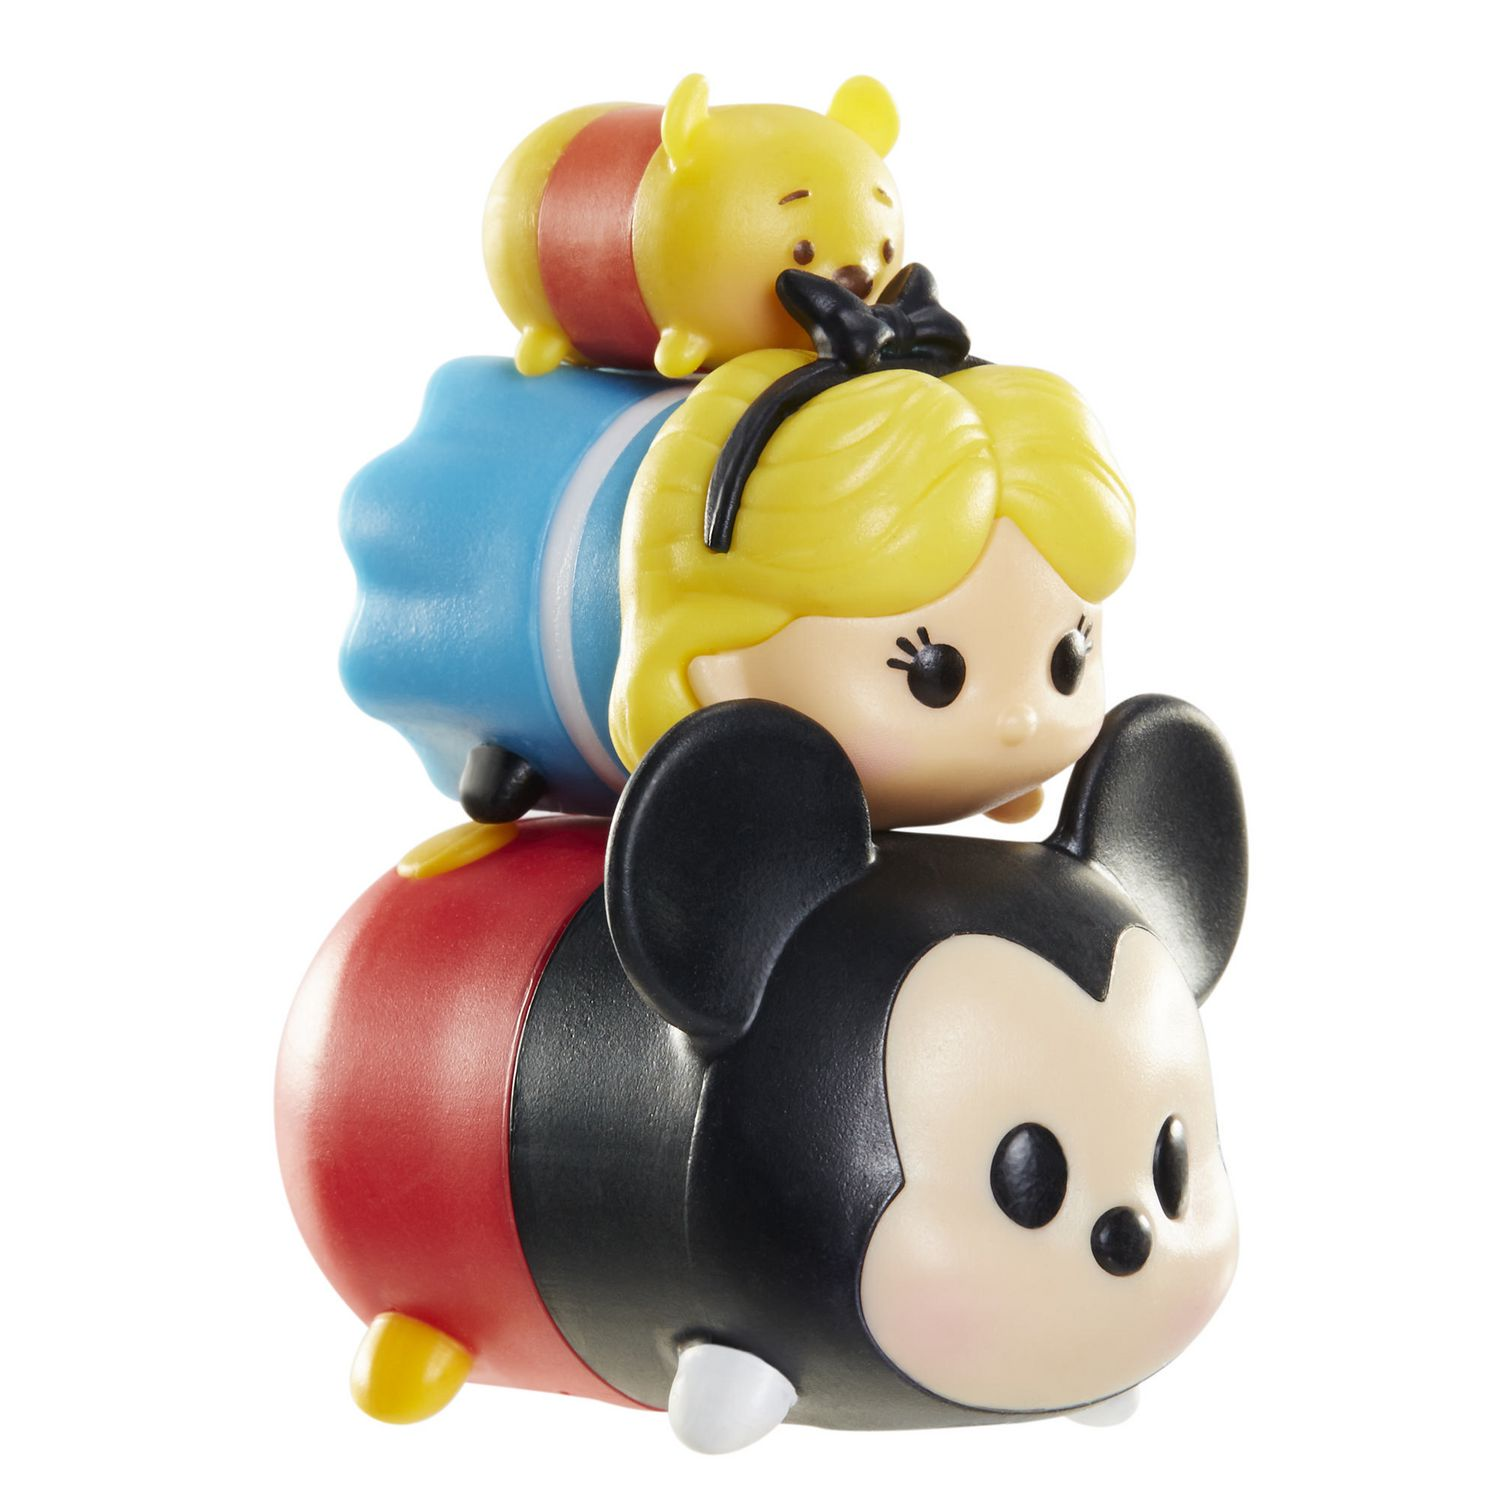 Alice and Pooh NEW Disney Tsum Tsum 3 Pack Series 1 Figures Mickey Mouse